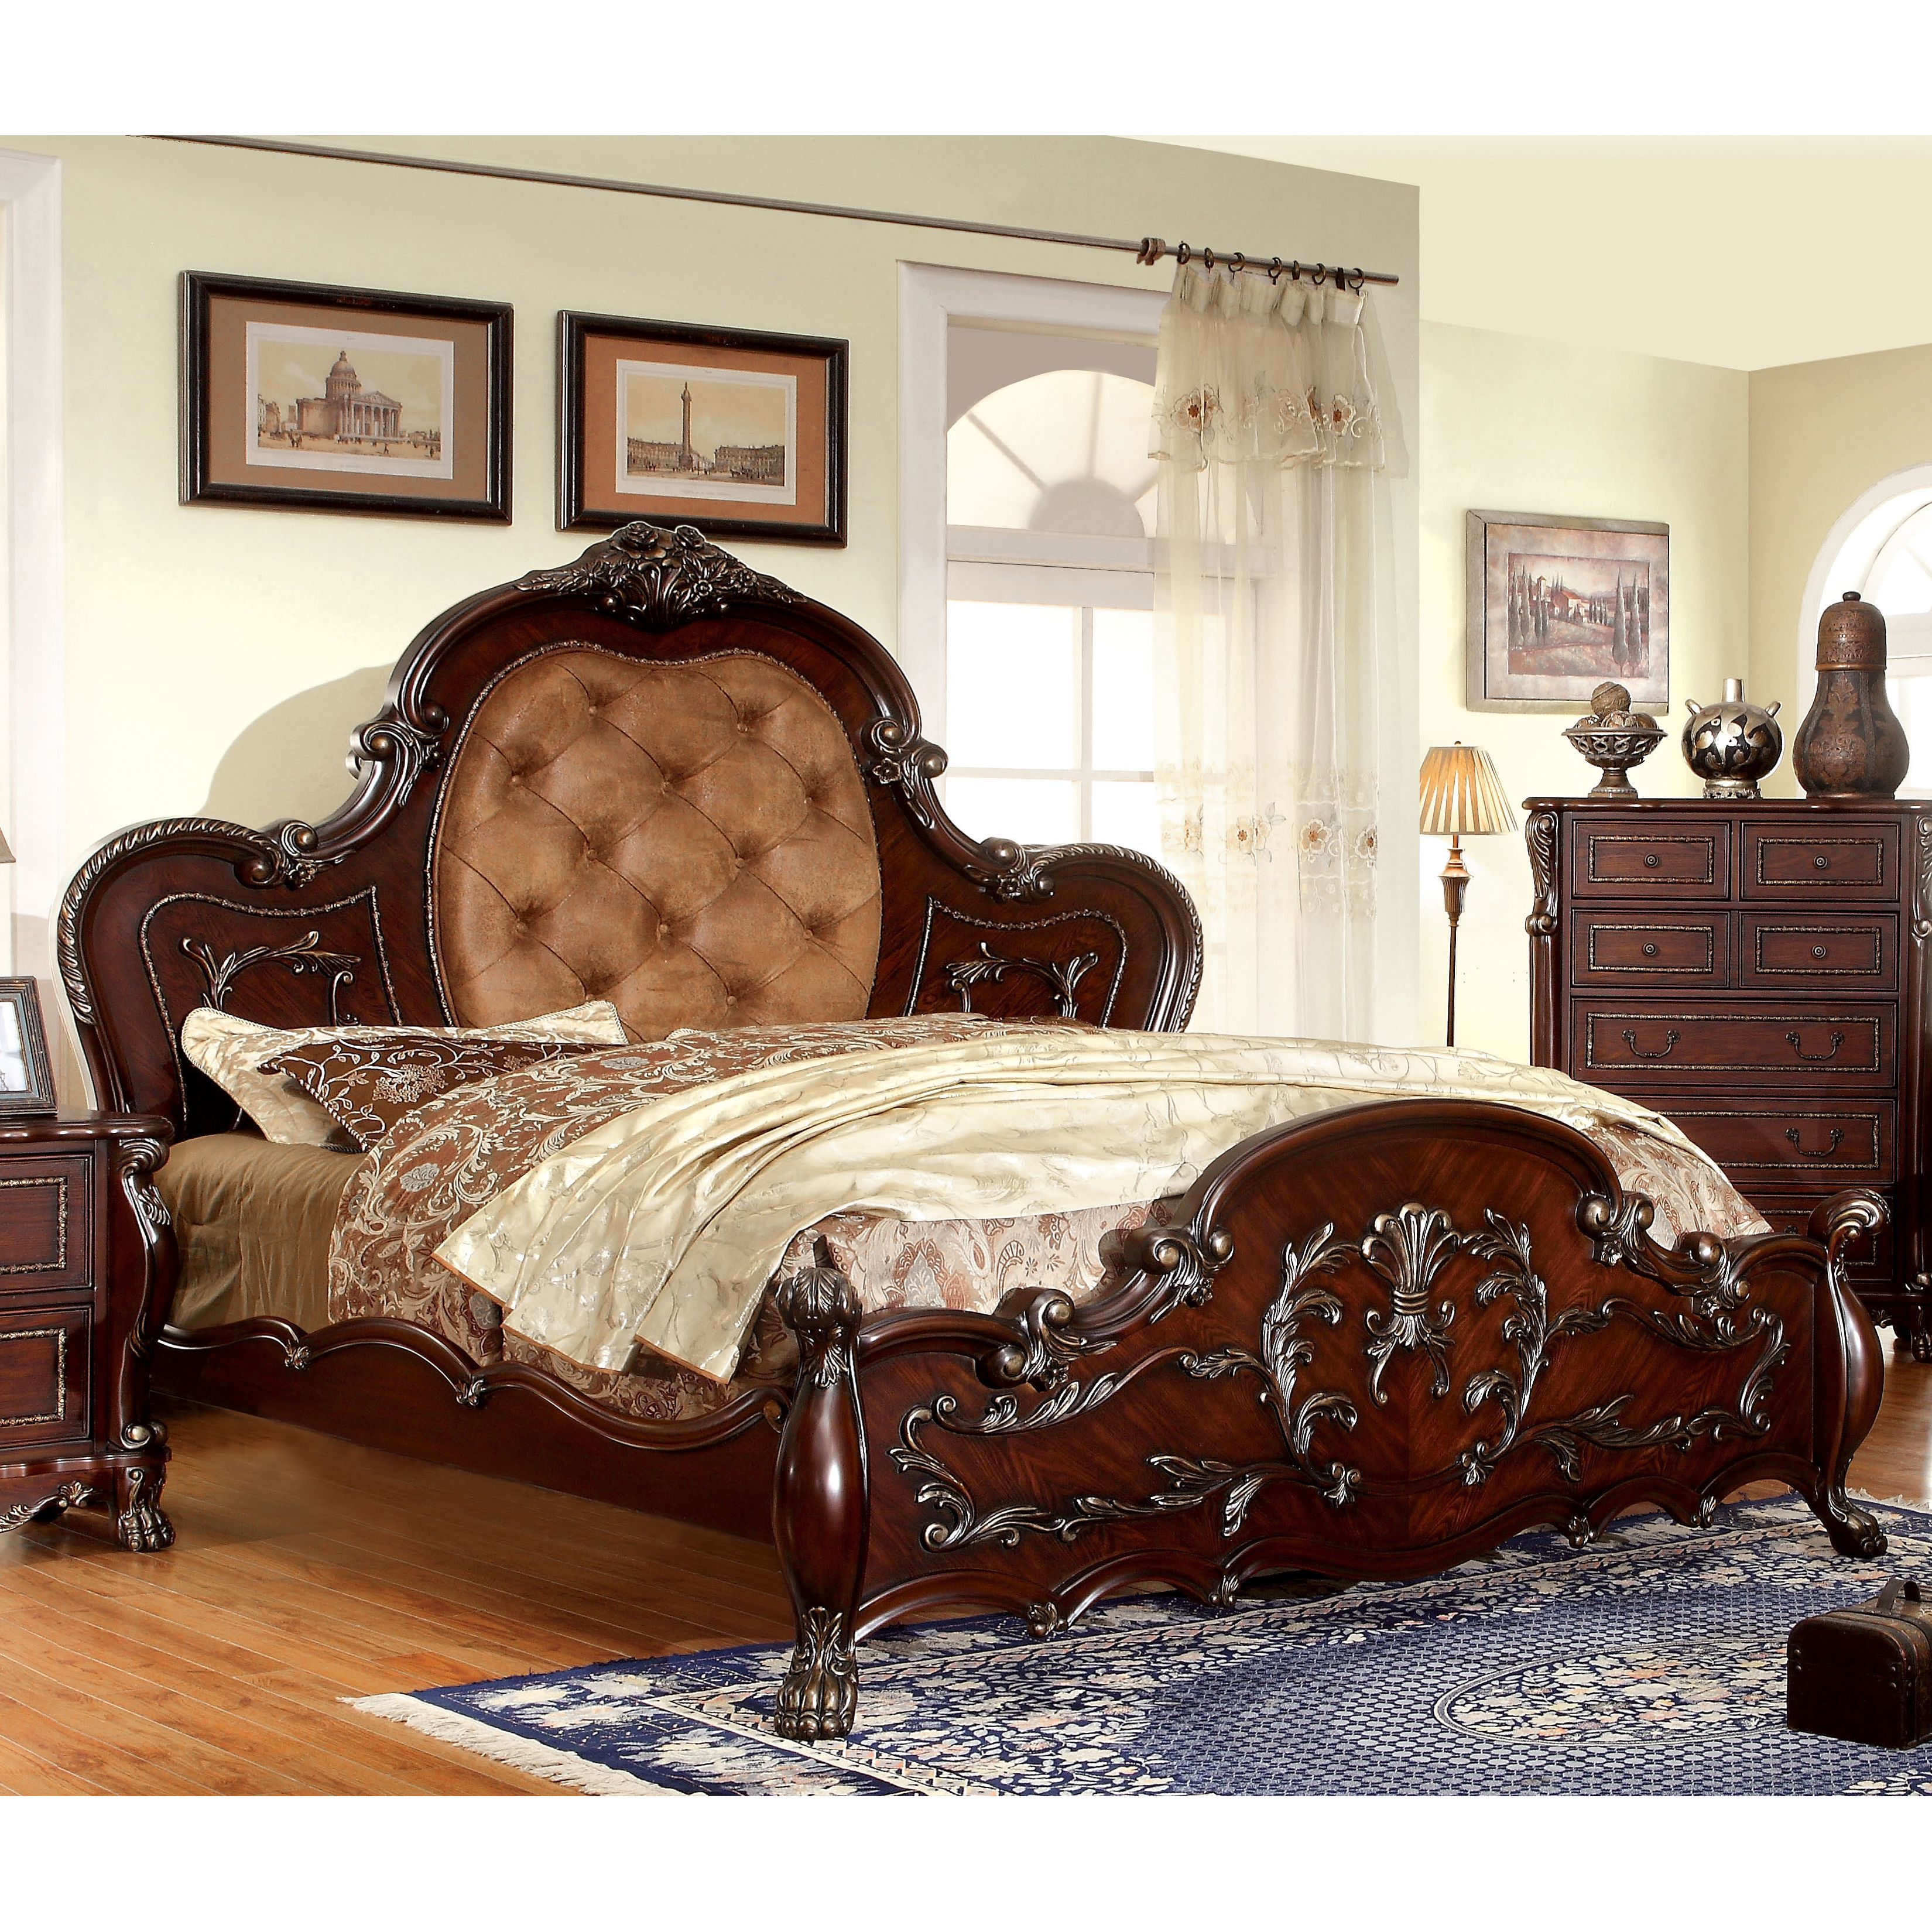 Furniture of America Nuff Traditional Cherry Faux Leather